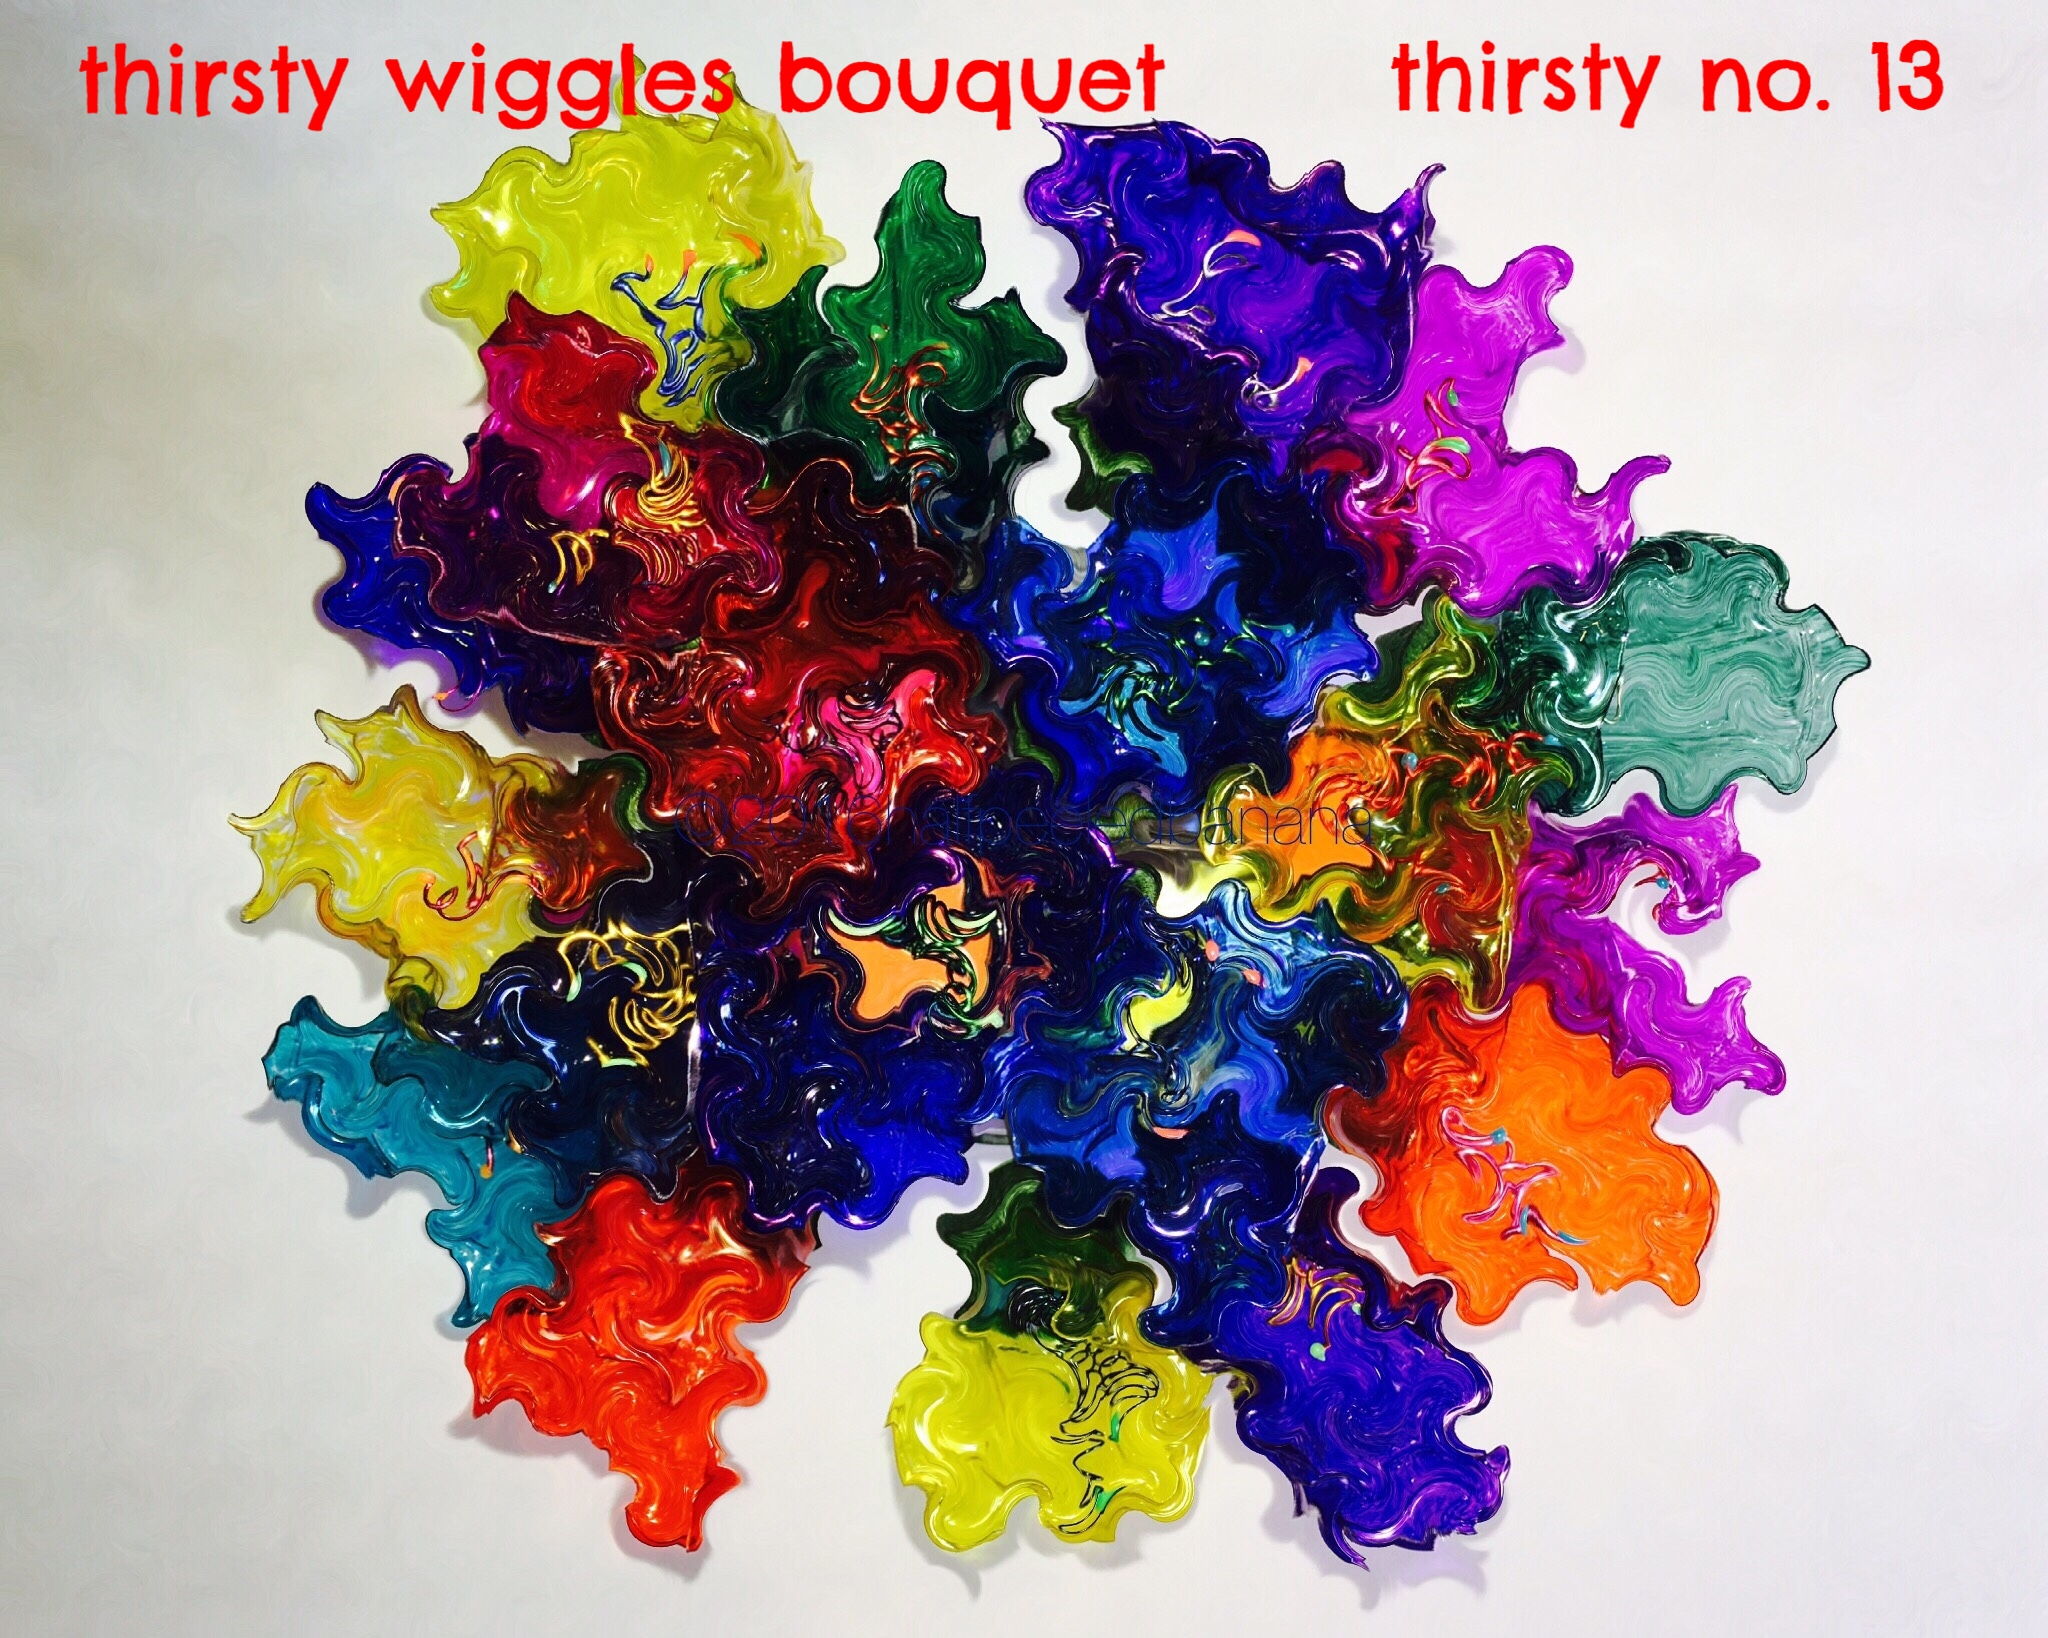 thirsty wiggles print - thirsty no. 13